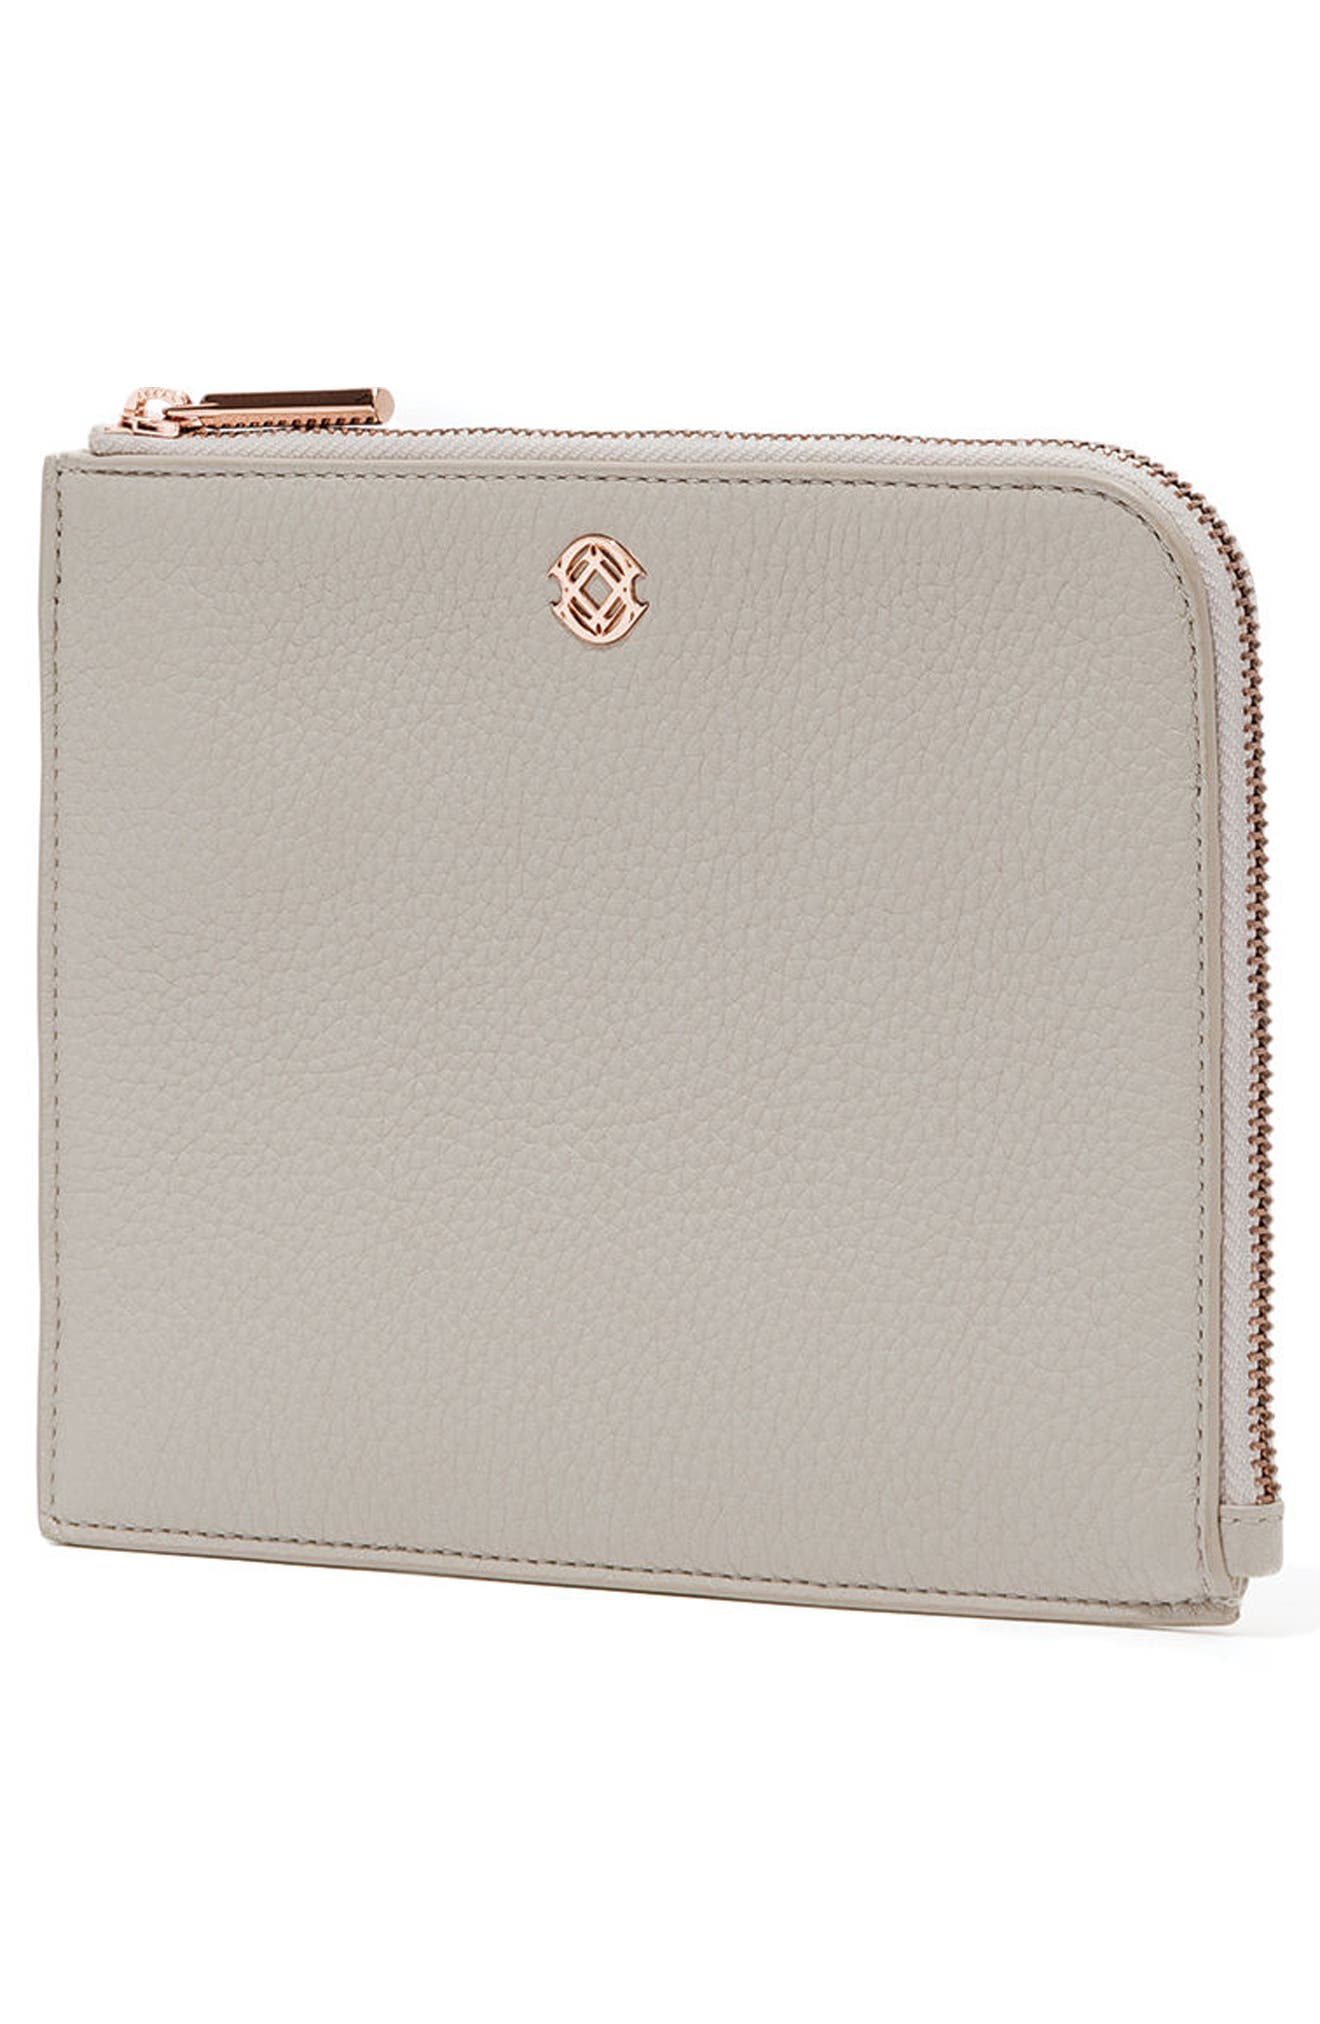 Small Elle Leather Clutch,                             Alternate thumbnail 3, color,                             Bone